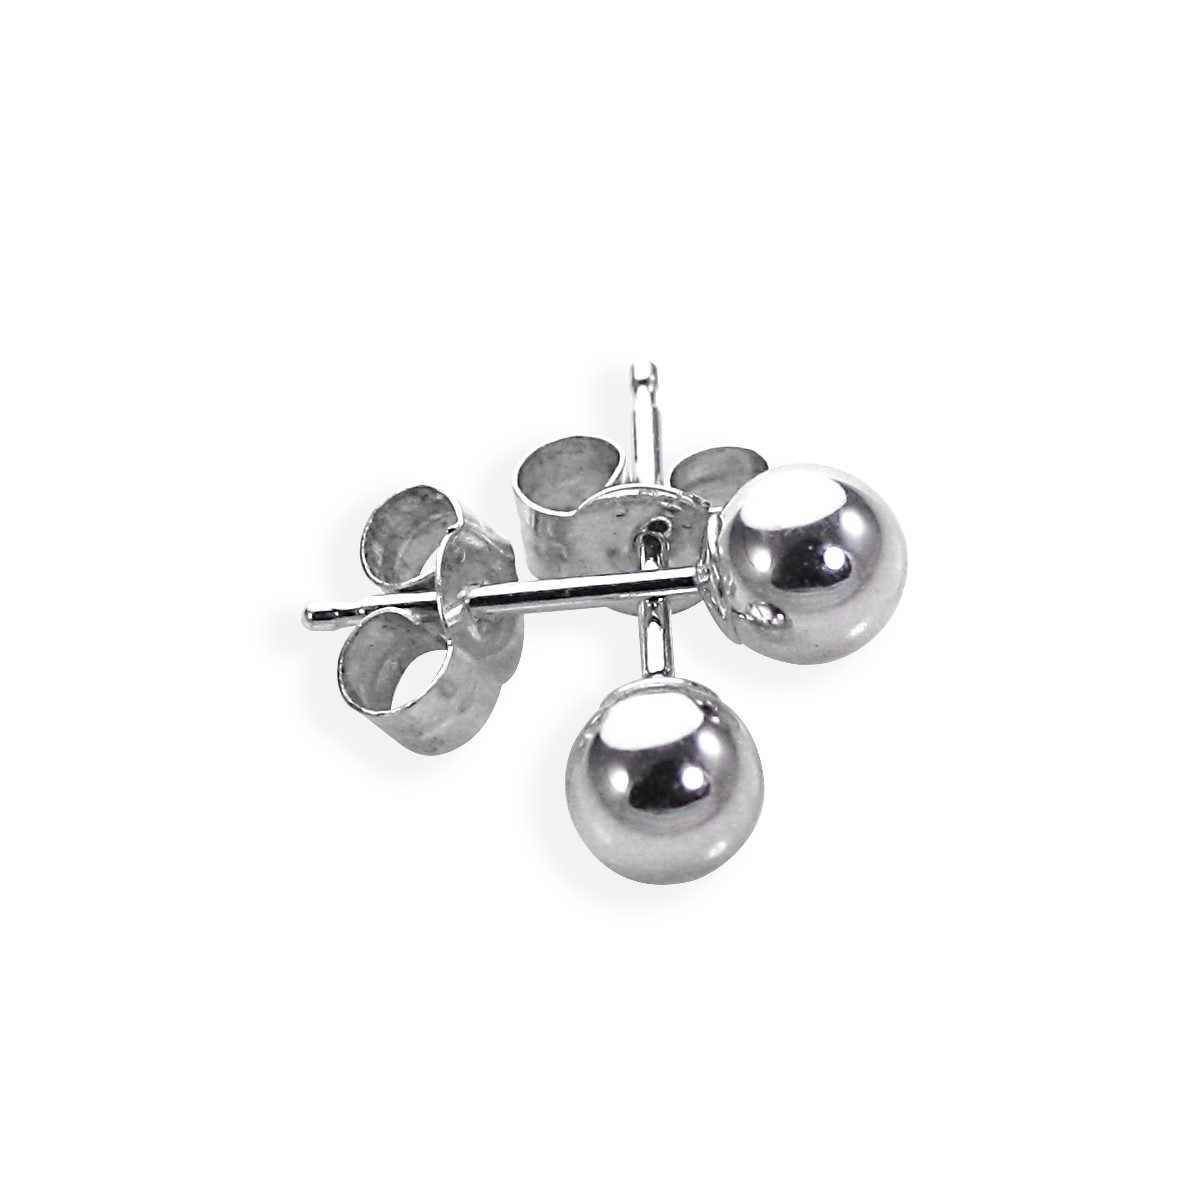 5afaa0c51 Details about 9ct White Gold Ball Stud Earrings 3mm - 6mm